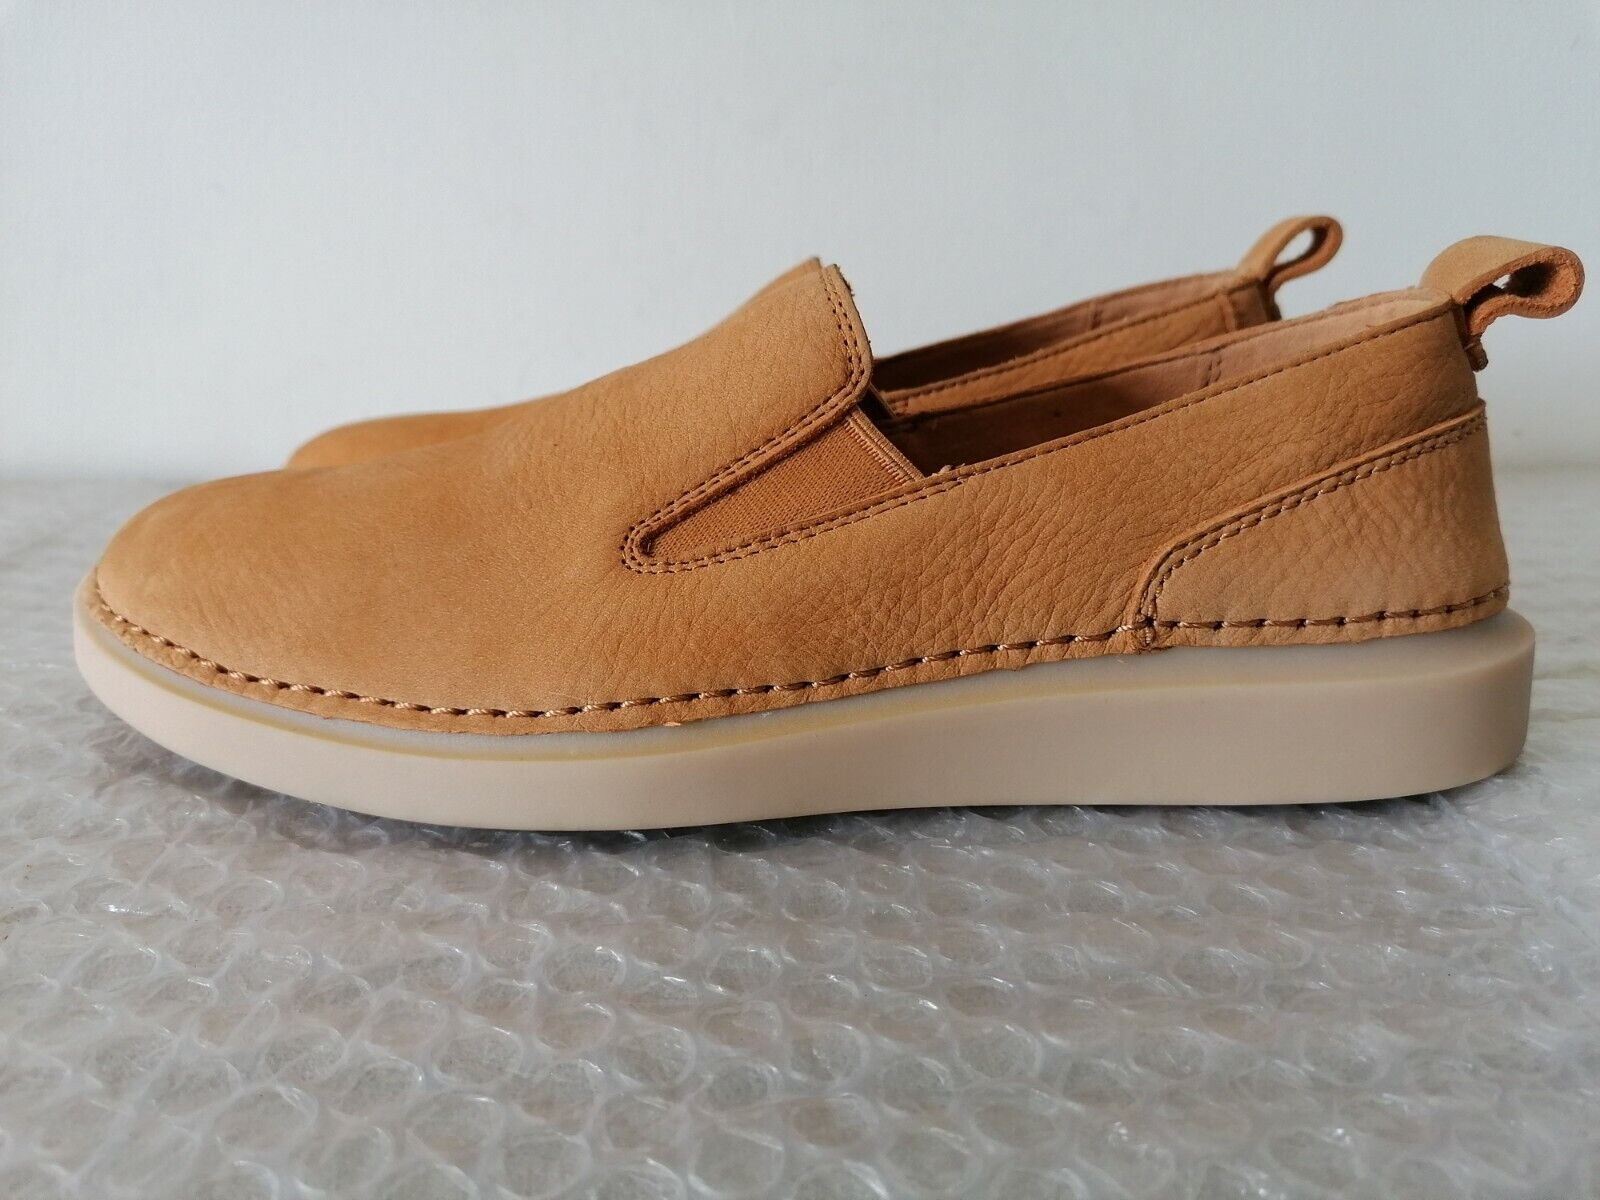 guard lecture bang  Clarks Handcrafted Bombay Lights Womens Light Tan Leather Shoes UK 8 for  sale | eBay